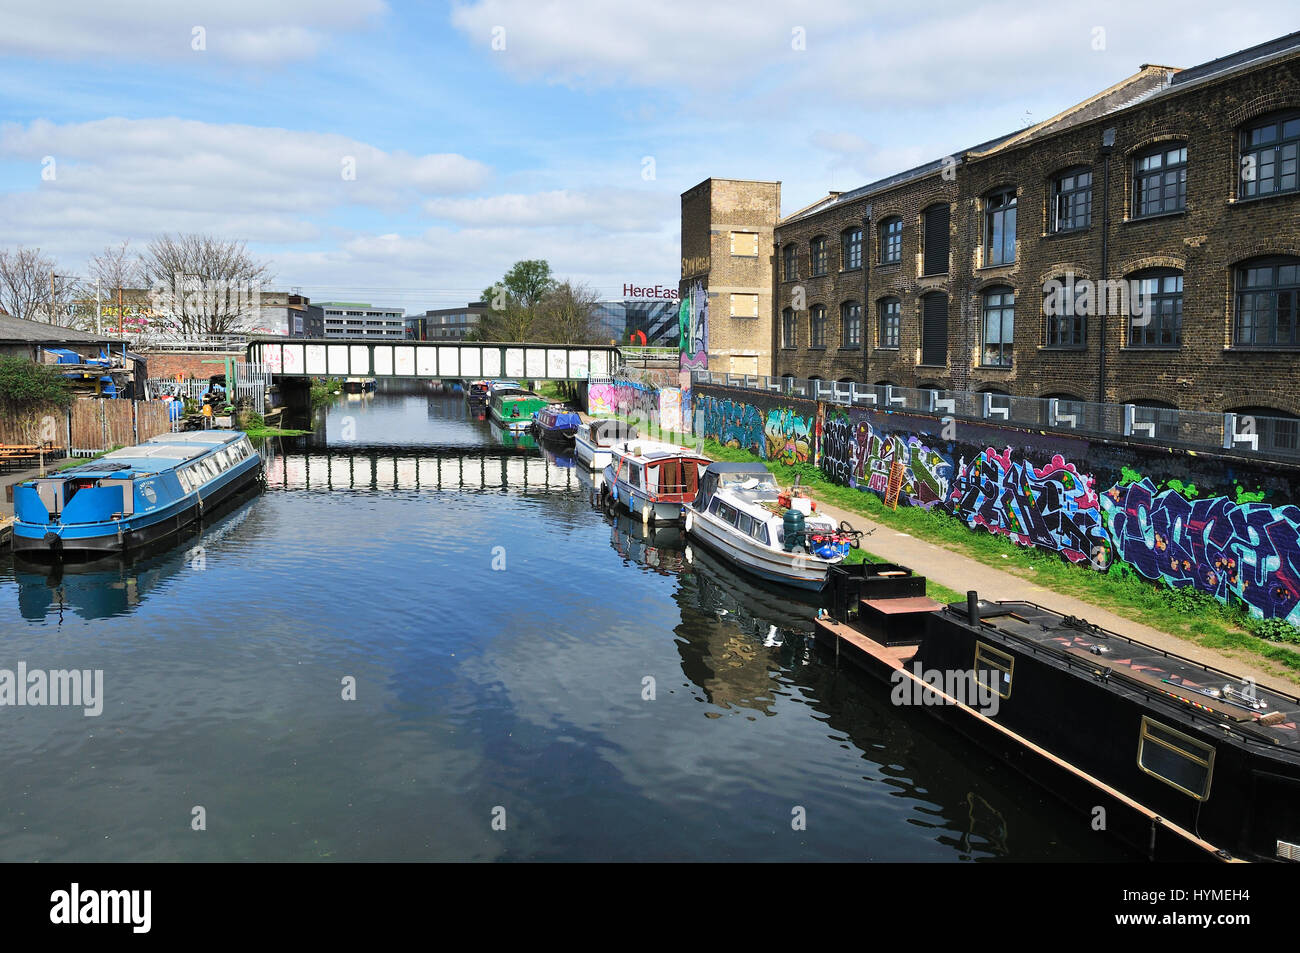 River Lea Navigation at Hackney Wick, on the edge of the Queen Elizabeth Olympic Park in London's East End, - Stock Image